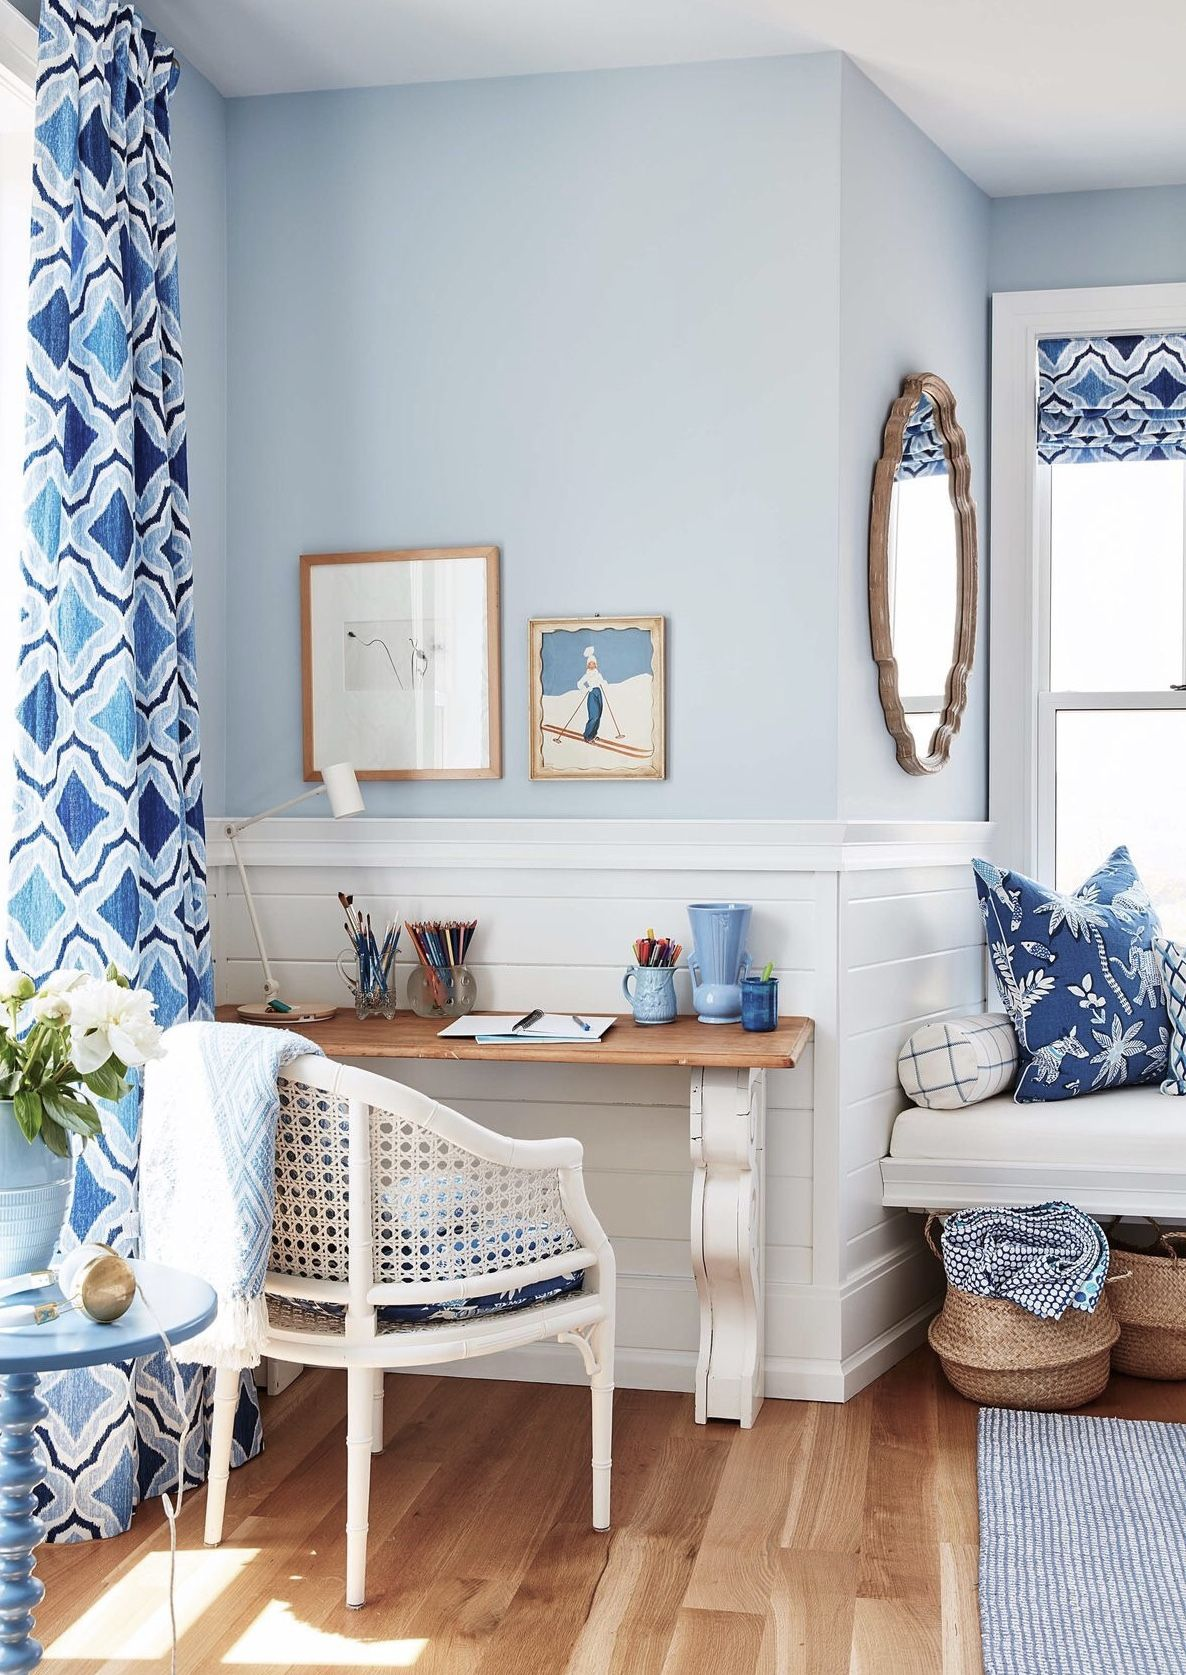 Pin by Margaret Hess on Wonderful living spaces | Pinterest ...